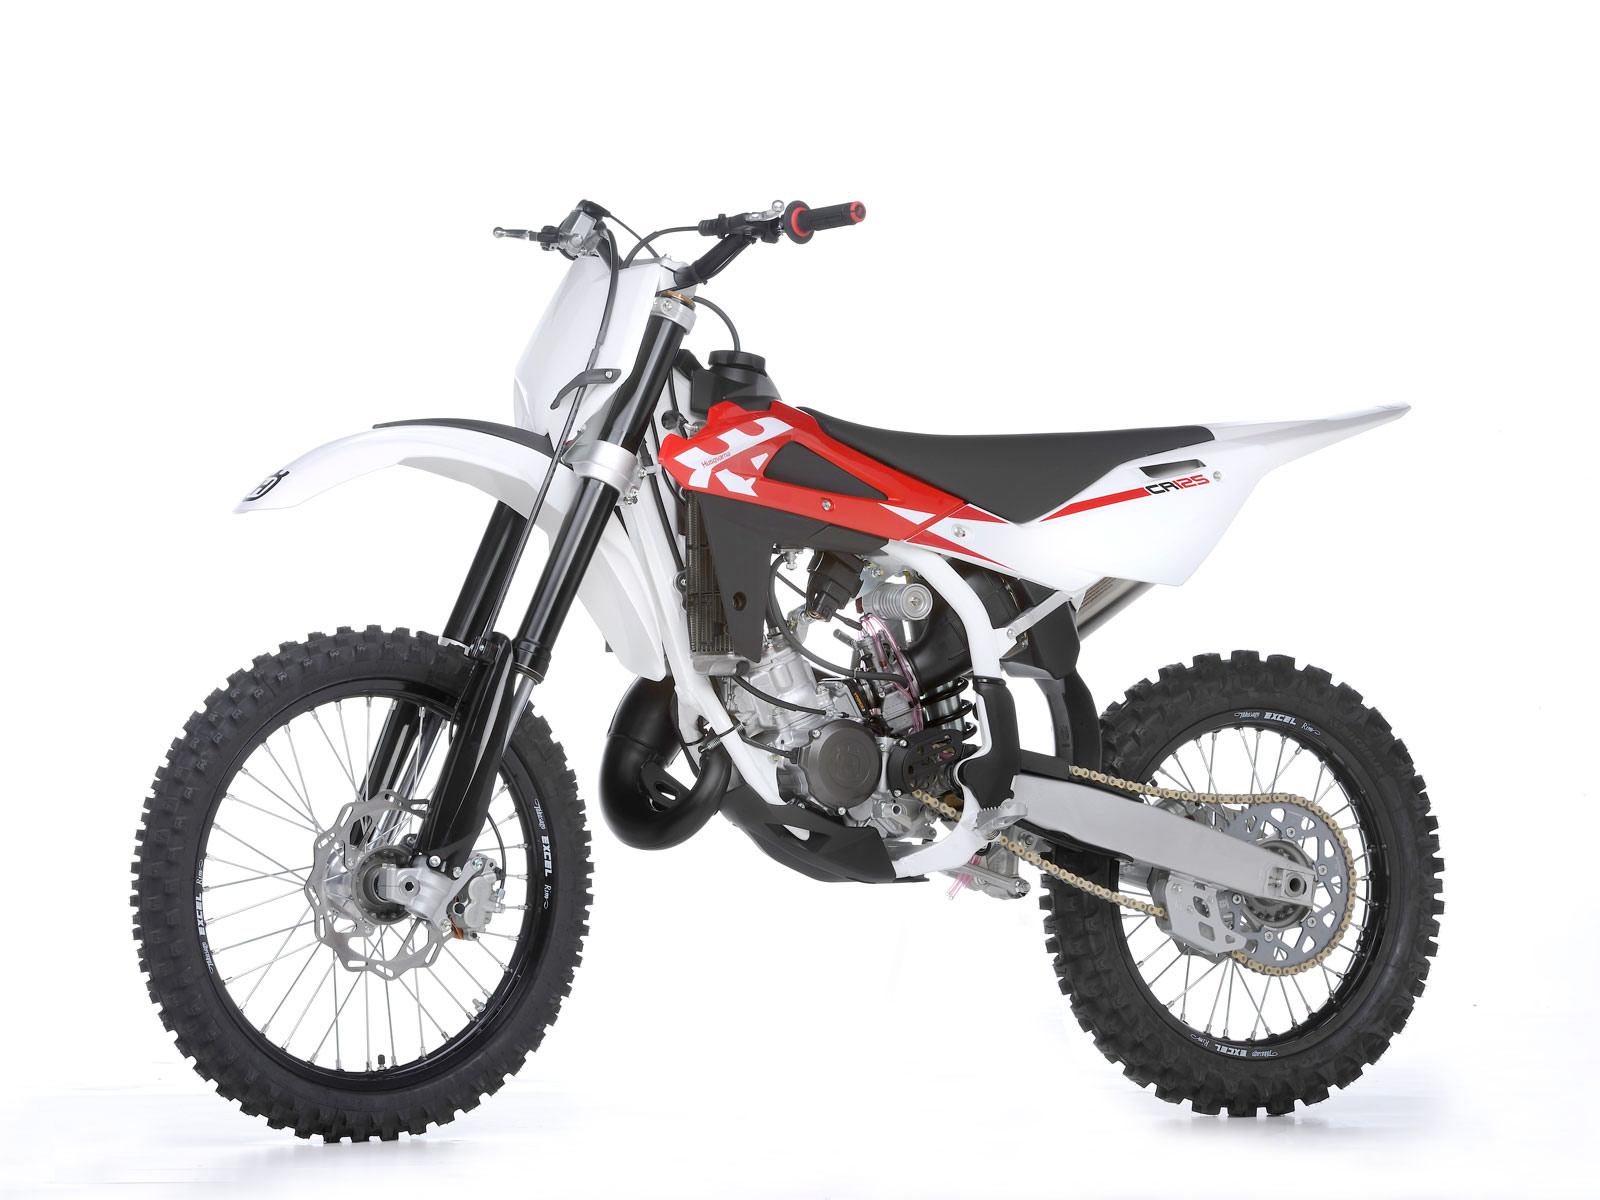 husqvarna motorcycle photos 2012 cr125 specifications. Black Bedroom Furniture Sets. Home Design Ideas